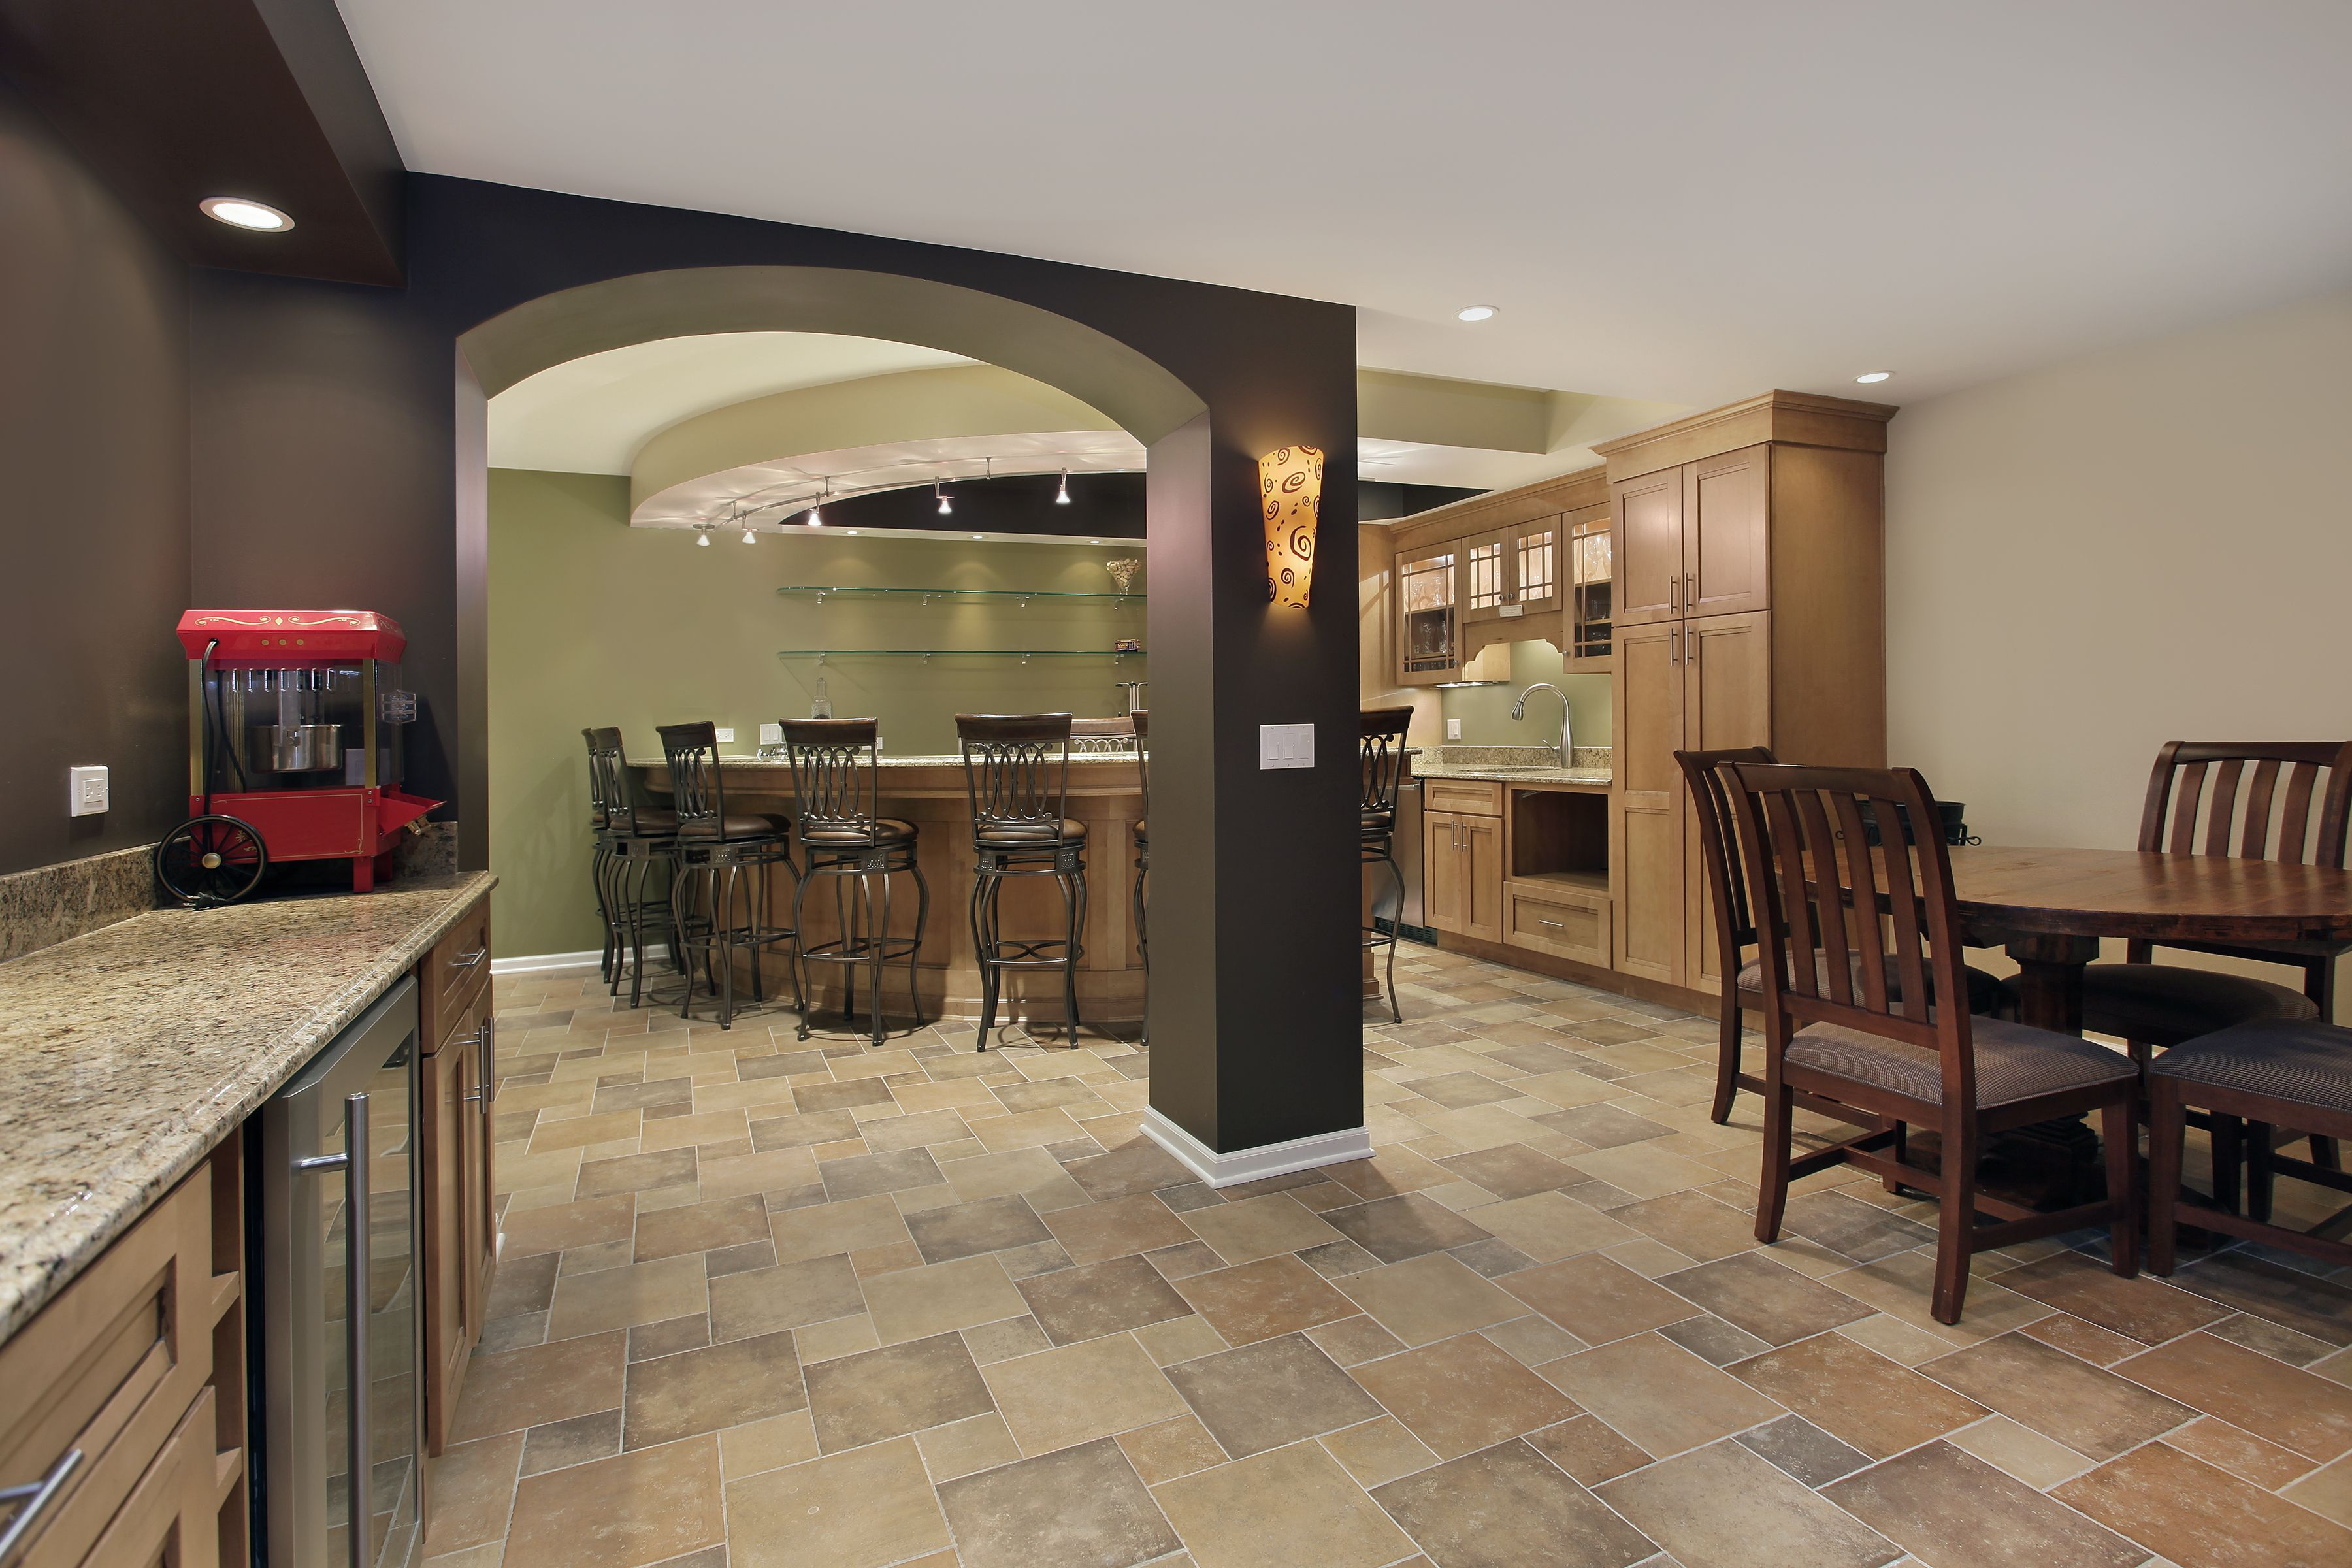 Gorgeous materials, lighting, and architectural details--but, where's the WoodTrac ceiling that would make this a perfect basement remodel?